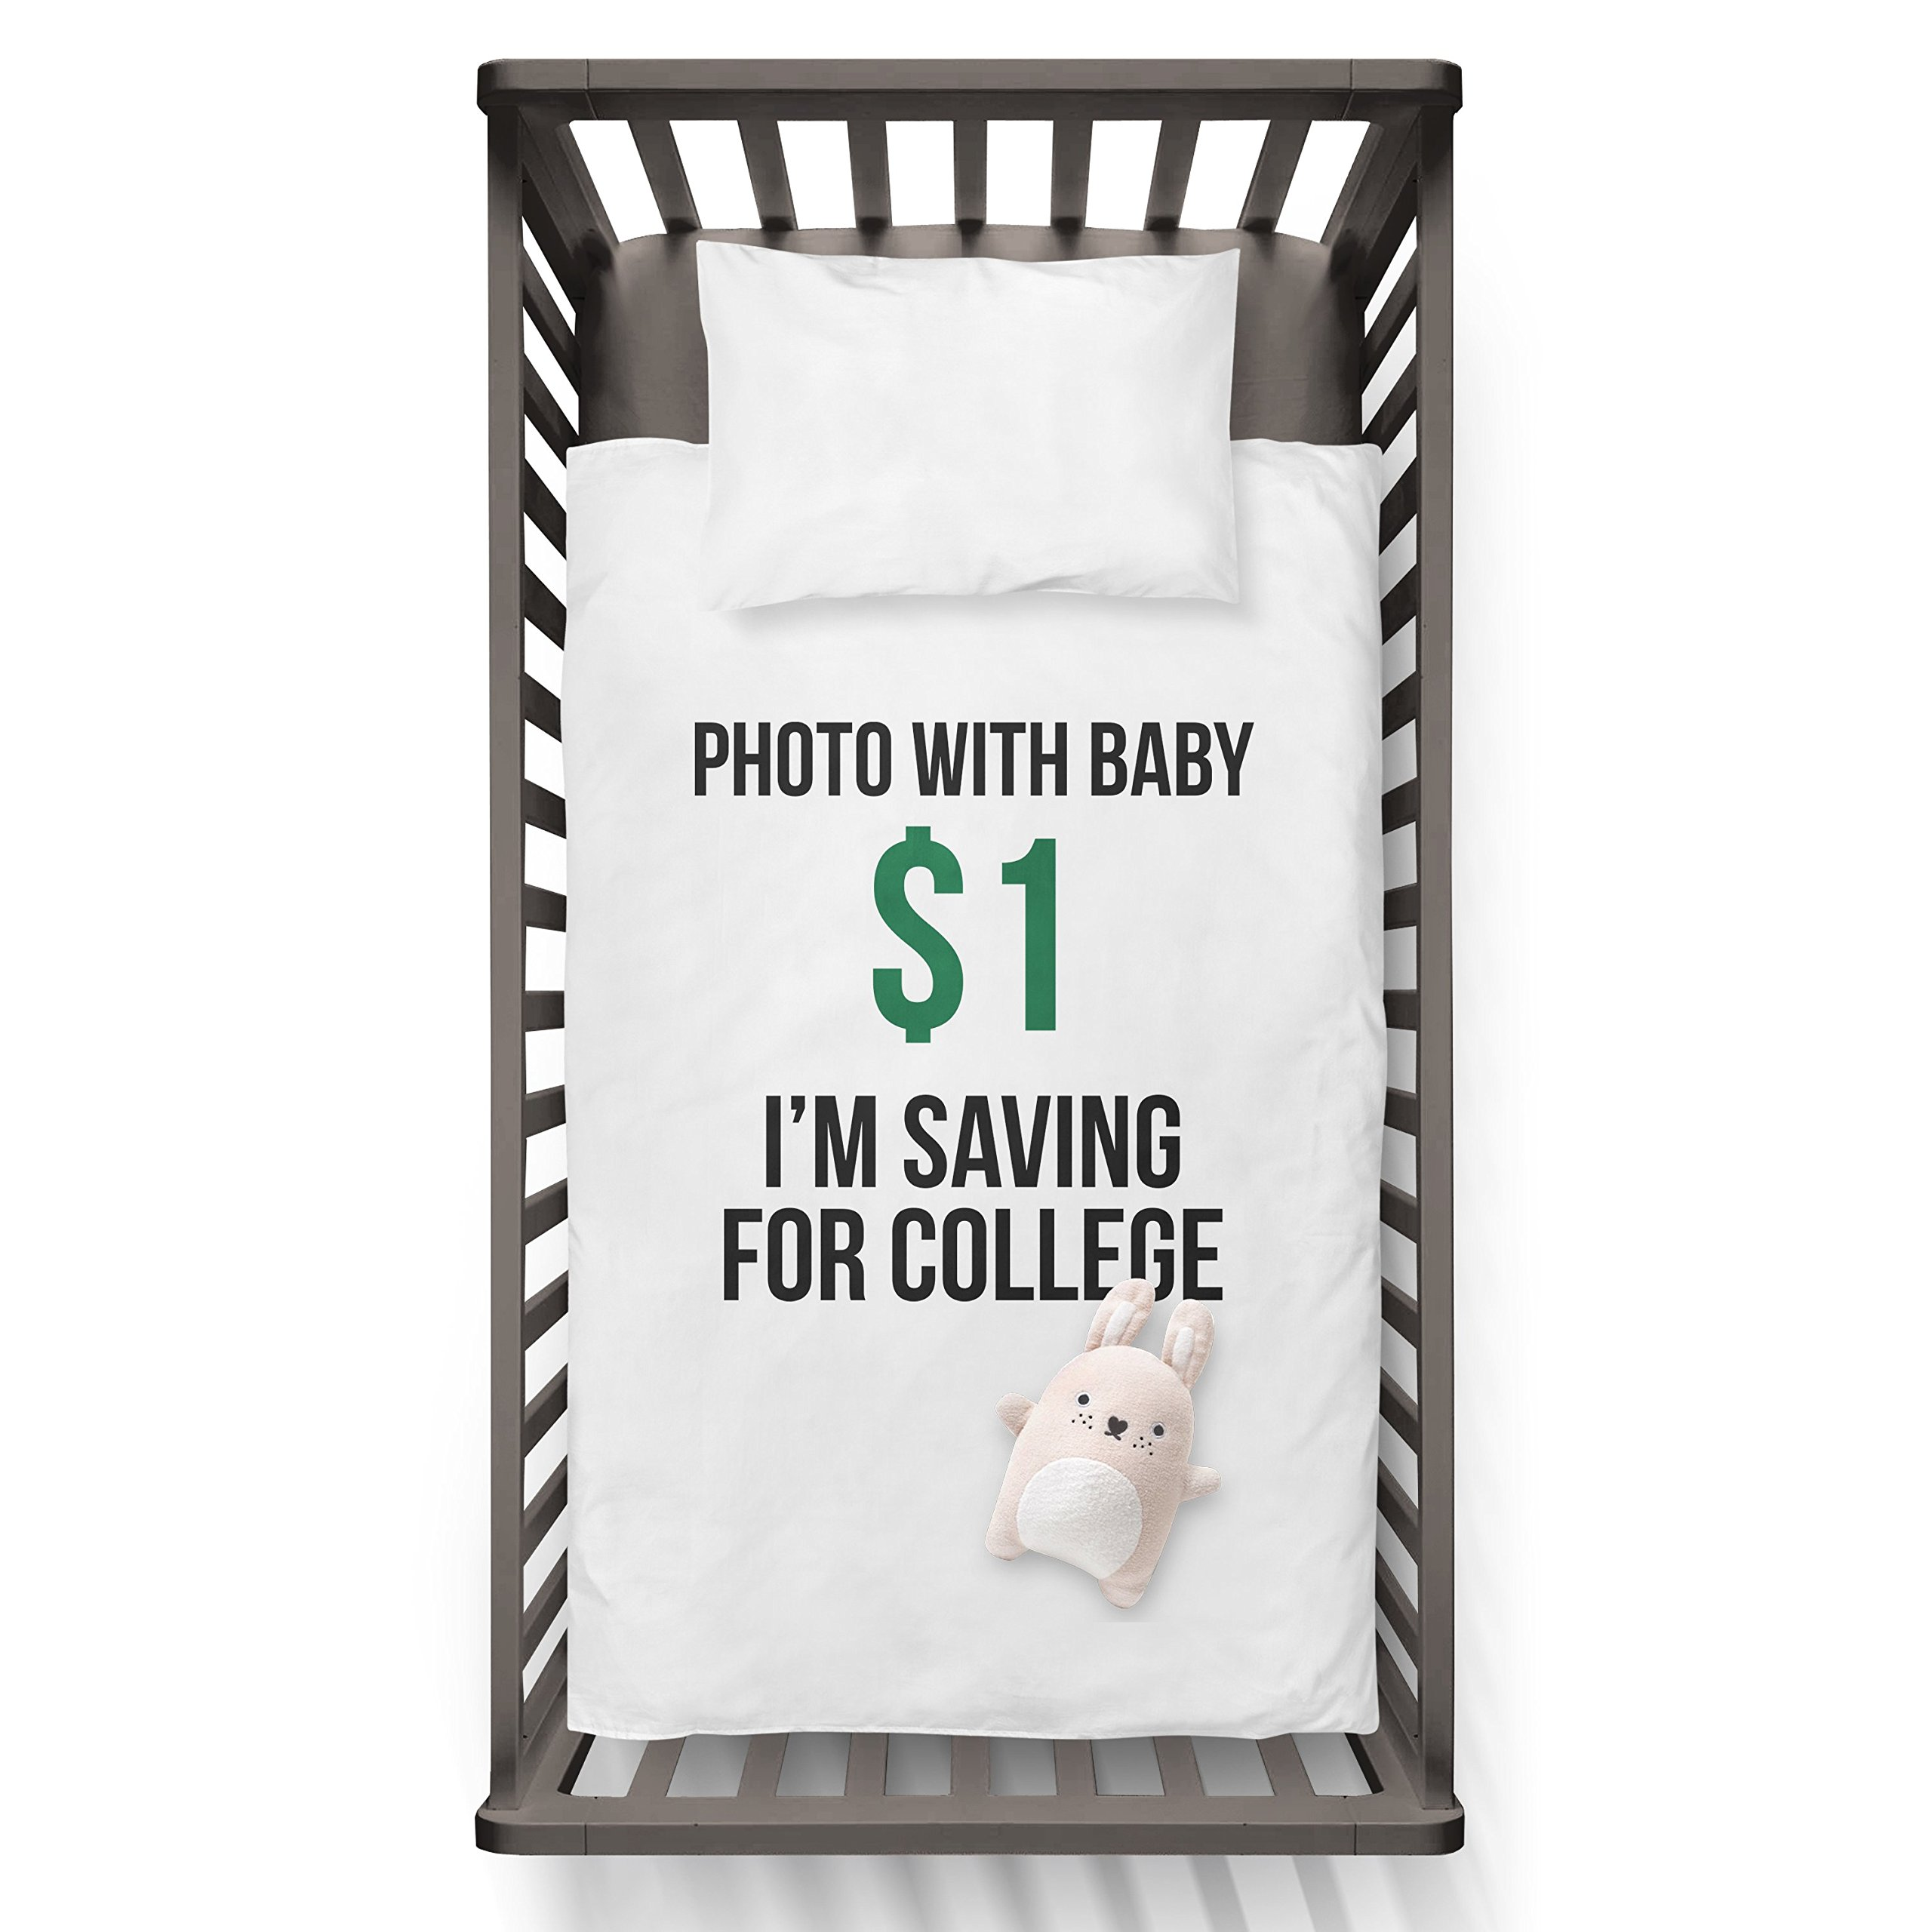 Photo with baby 1$ I'm saving for collage! Funny Humor Hip Baby Duvet /Pillow set,Toddler Duvet,Oeko-Tex,Personalized duvet and pillow,Oraganic,gift